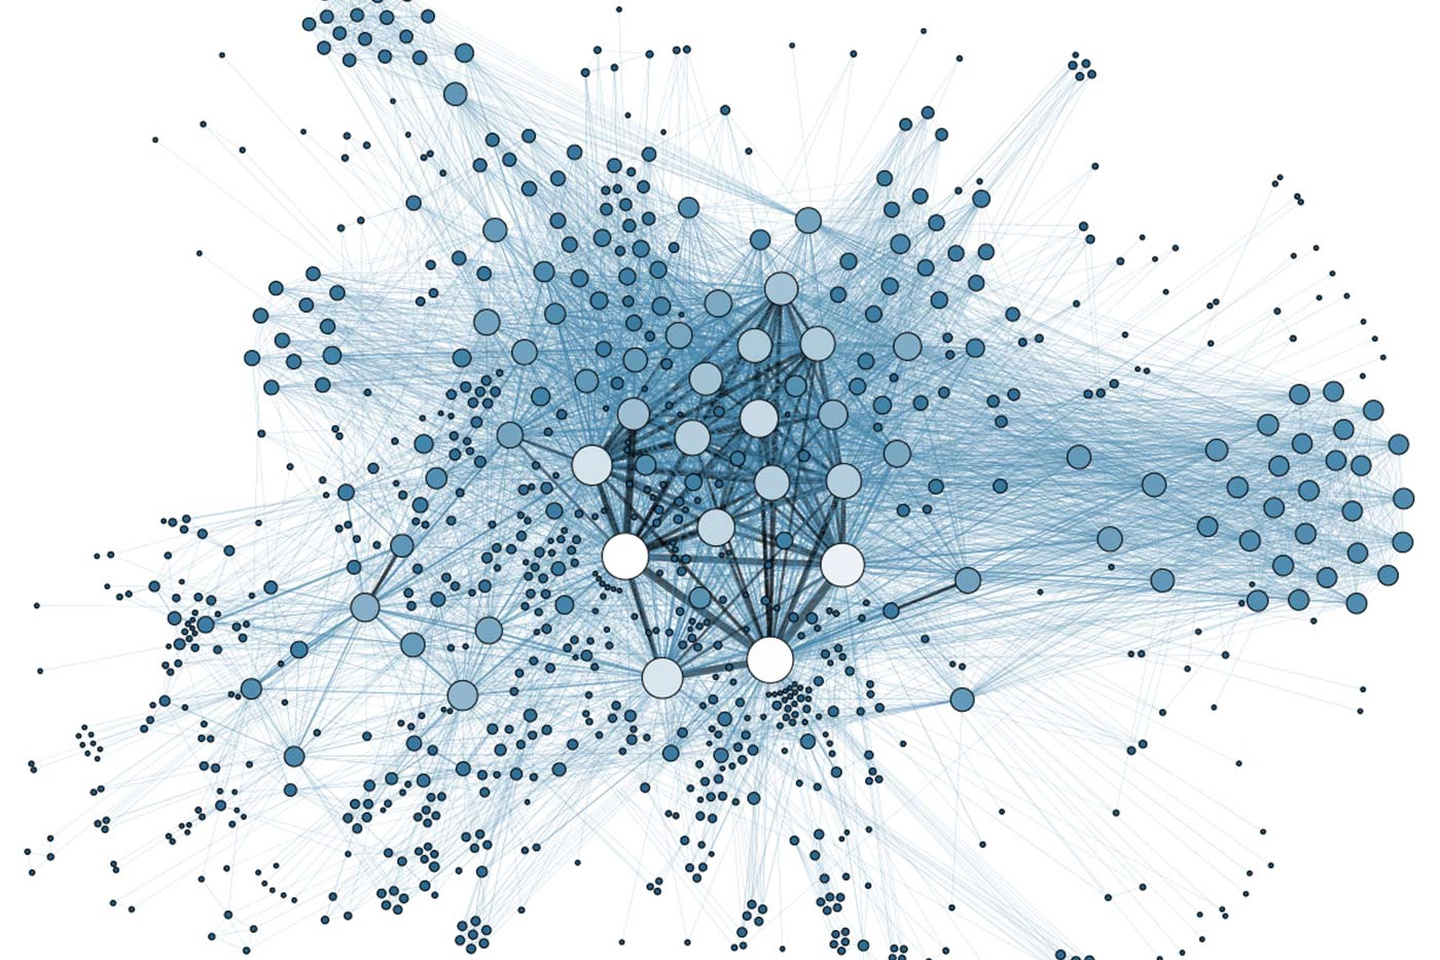 011 Social Network Analysis Visualization Crop Research Paper Google Maps Wonderful Papers Full